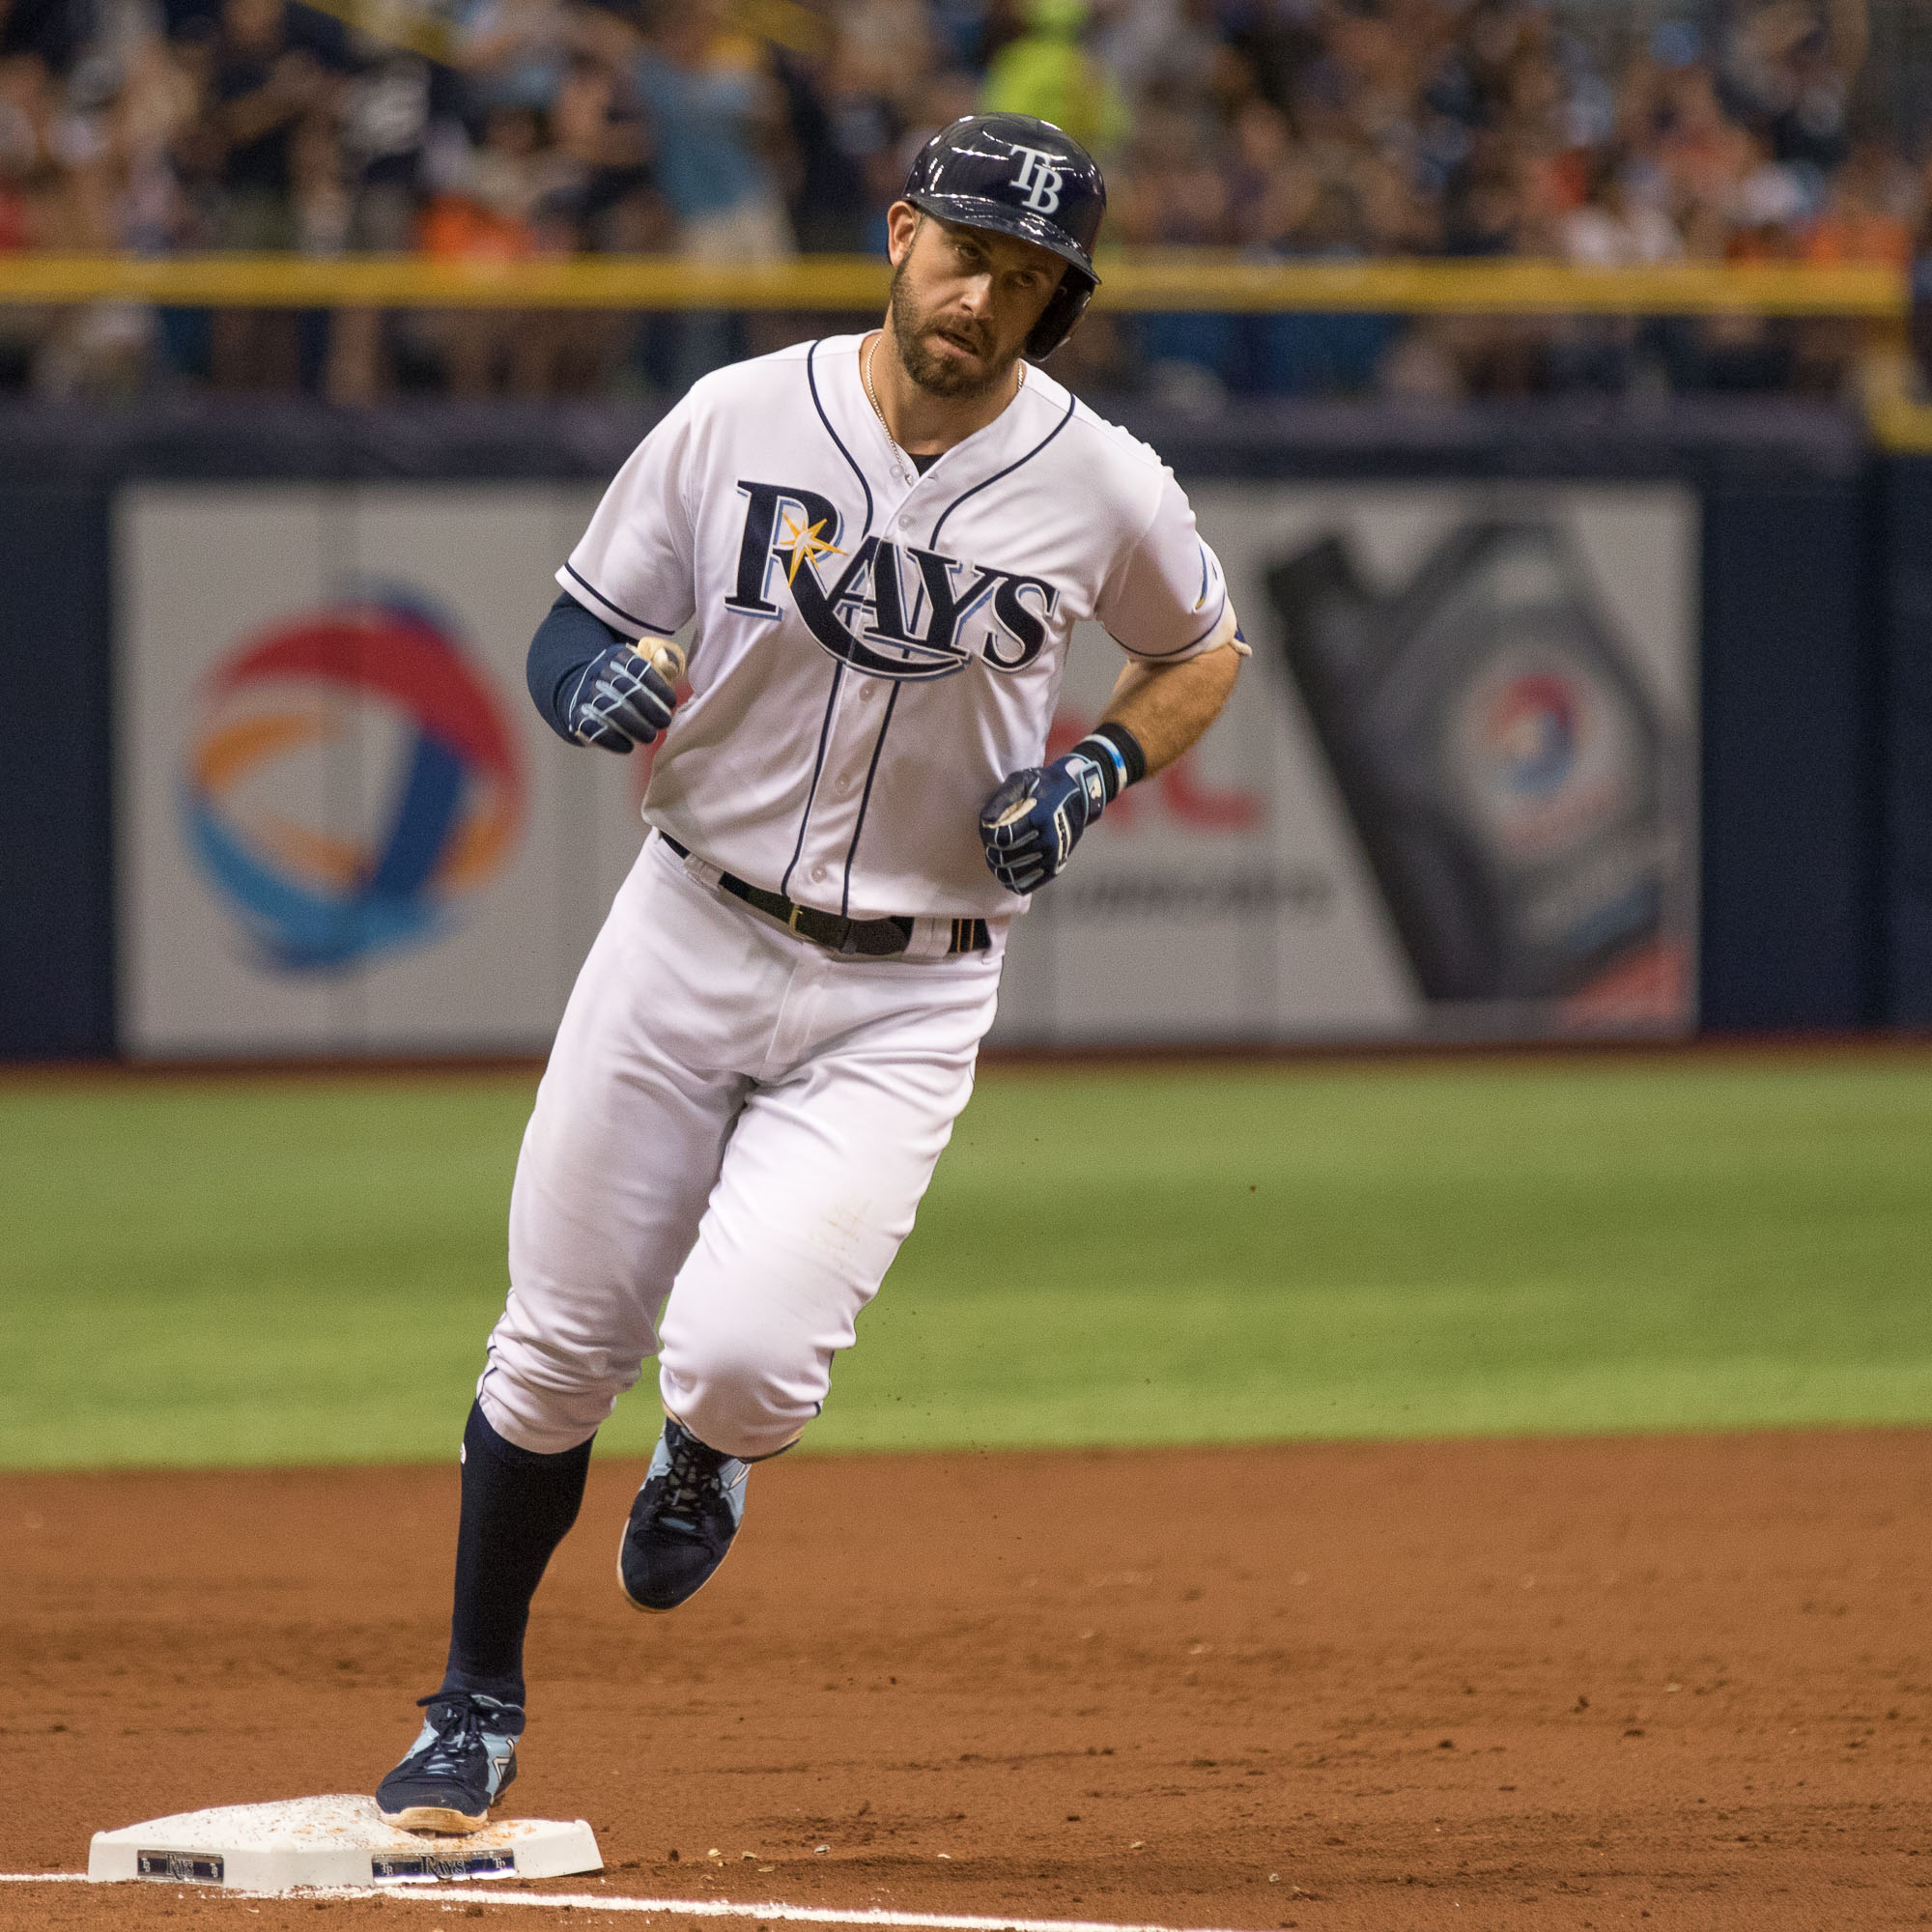 Evan Longoria tied the game with his third-inning homer./STEVEN MUNCIE